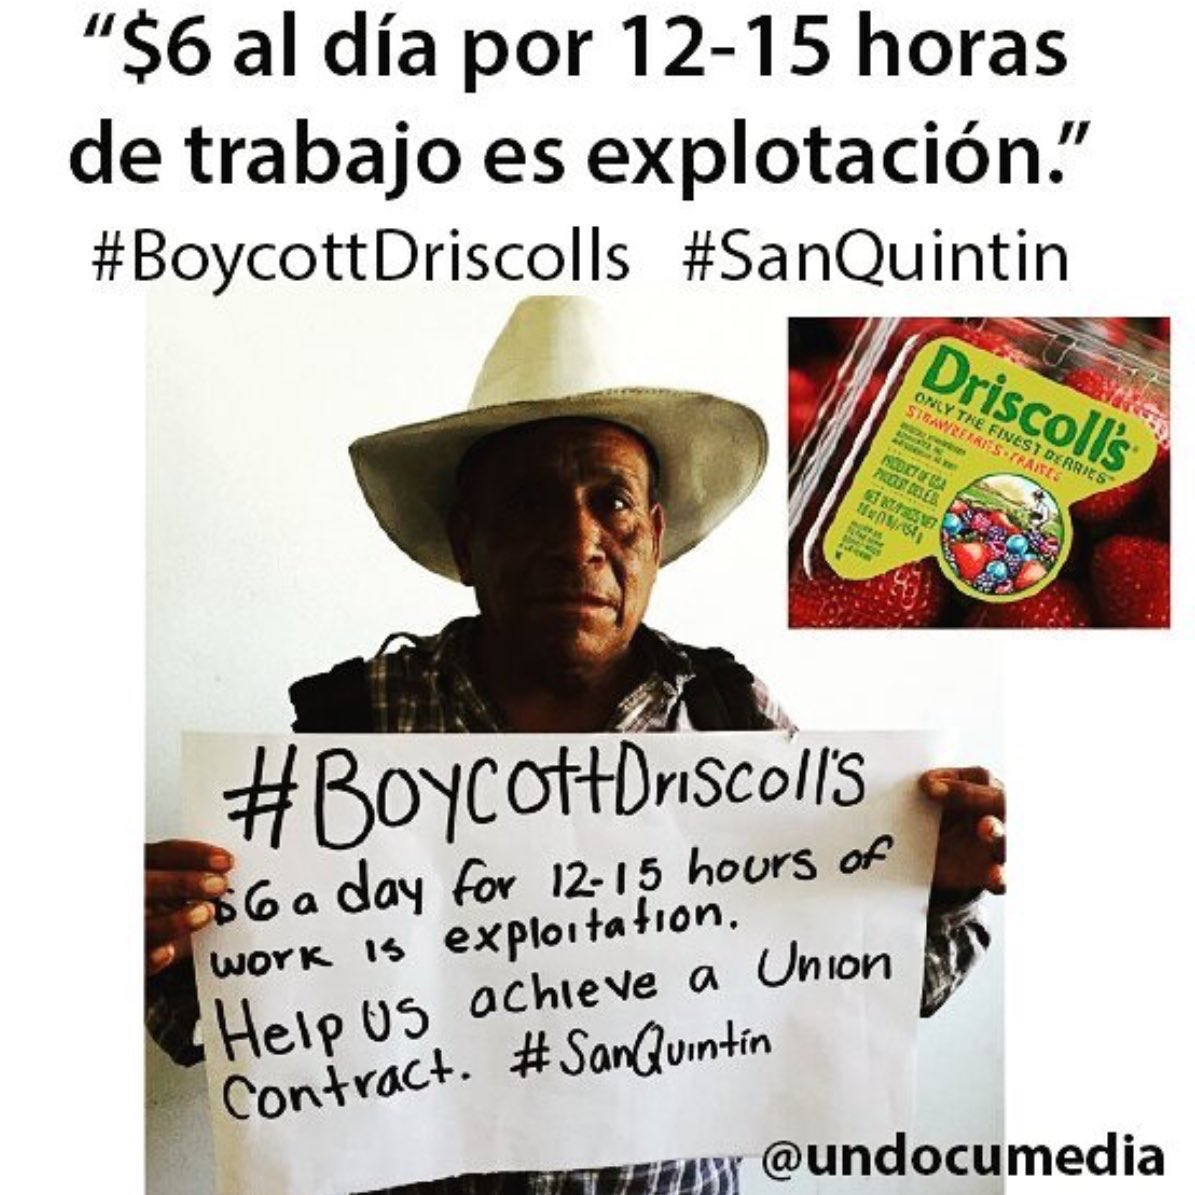 #BoycottDriscolls I HAVE FAMILY IN SQ AND THEY SAY THAT THE WORKERS DON'T GET FOOD,WATER, OR BATHROOM BREAKS https://t.co/9O0rZWt2q2